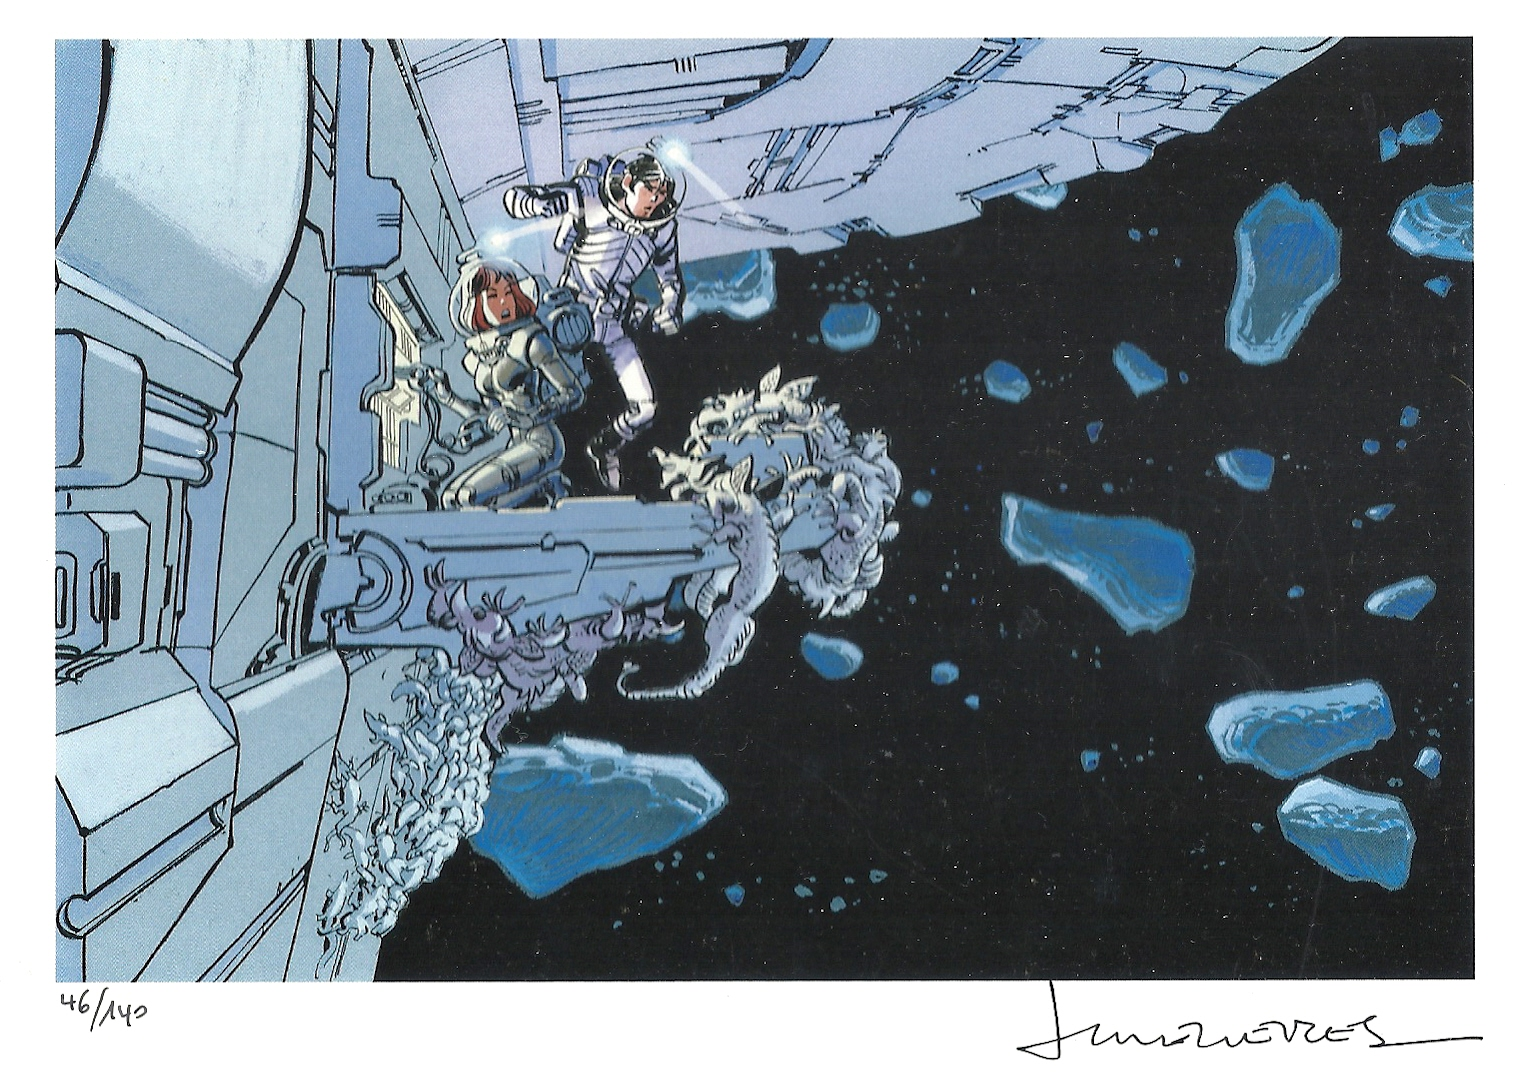 Luc Besson's Next Project: 'Valerian'